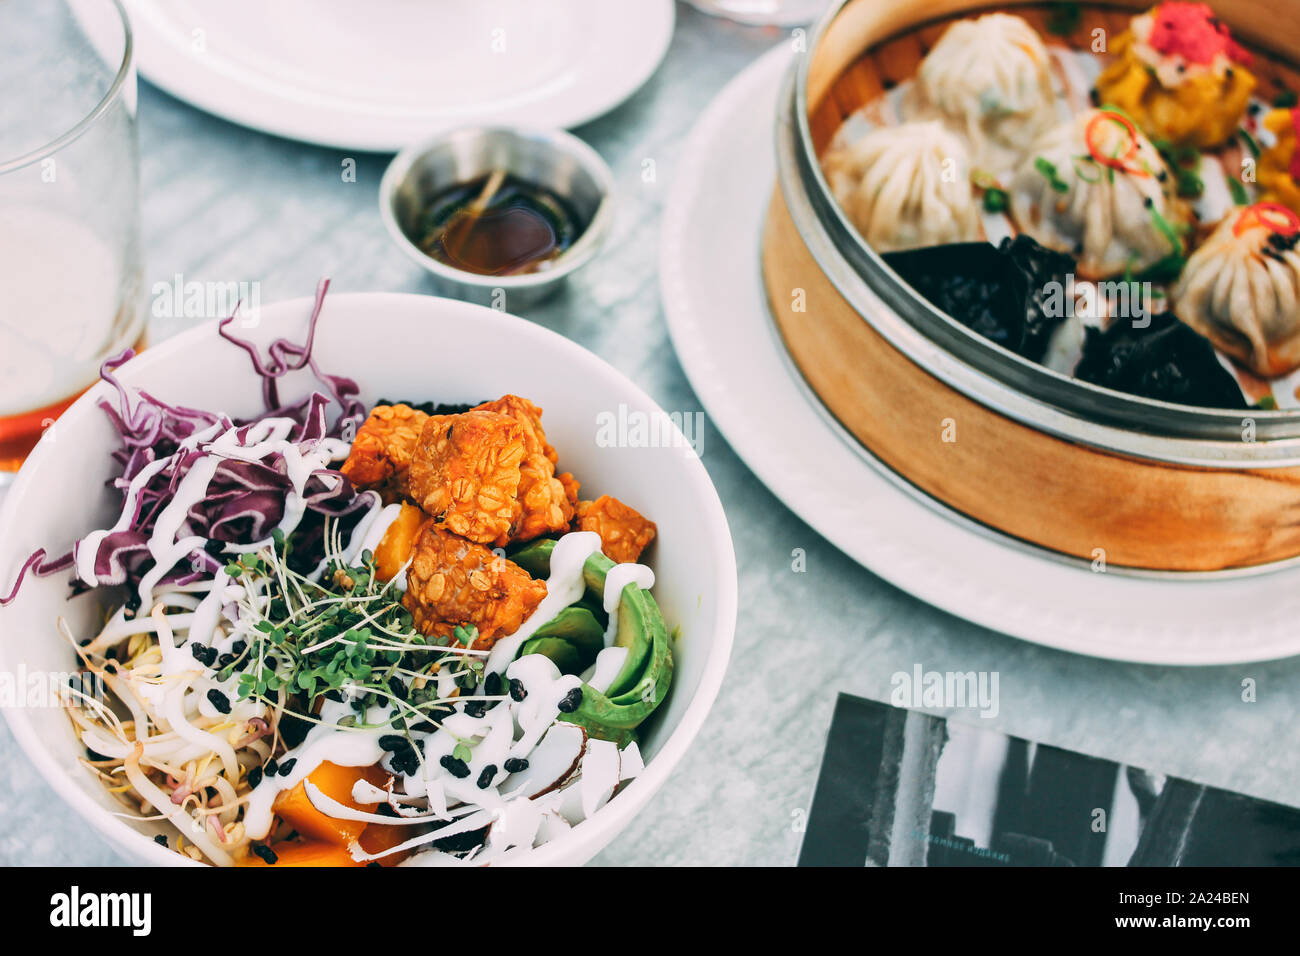 Pan-Asian food - vegetable salad bowl and different dim sums. Lunch for two with beer Stock Photo